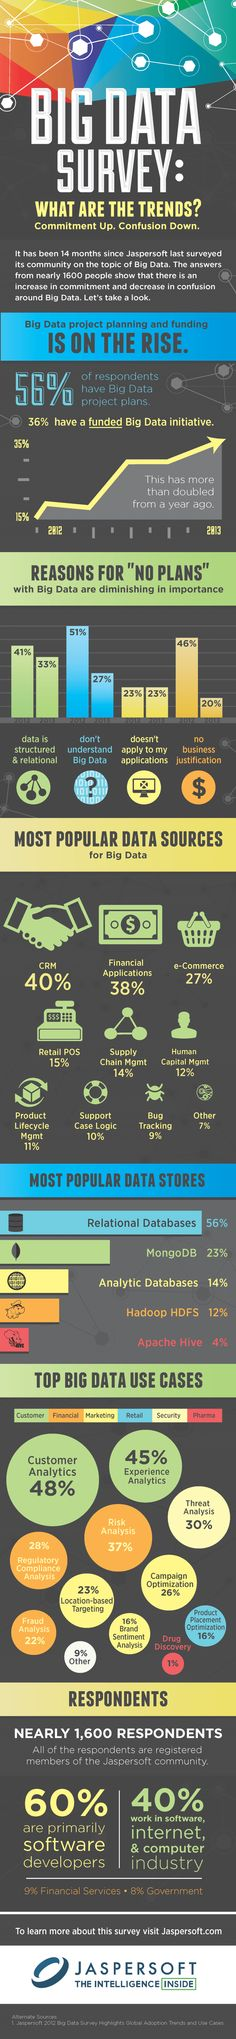 Big Data Survey What Are the Trends